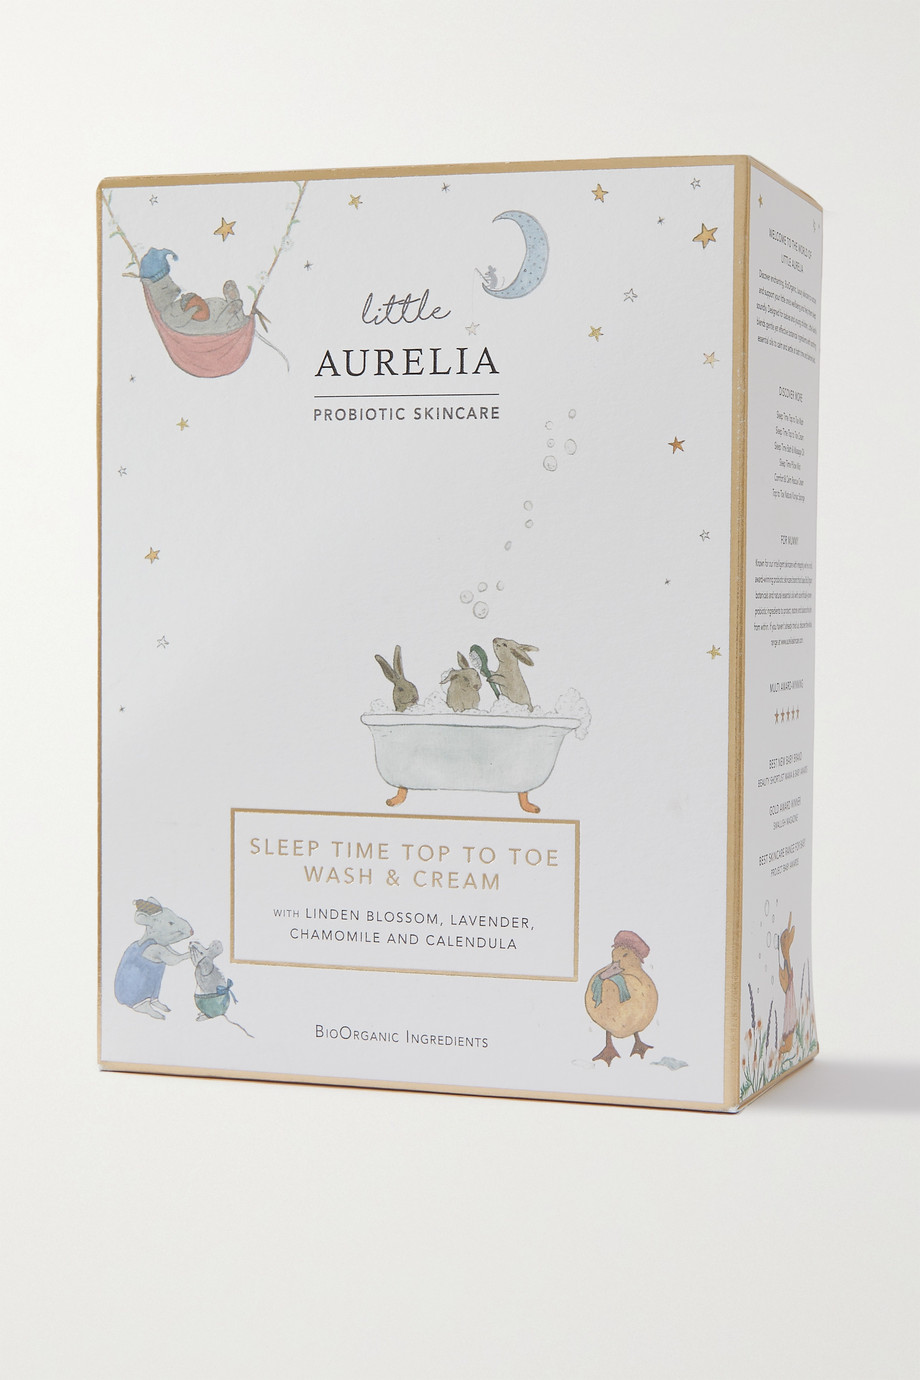 AURELIA PROBIOTIC SKINCARE + NET SUSTAIN Little Aurelia Sleep Time Top To Toe Wash & Cream, 2 x 240ml